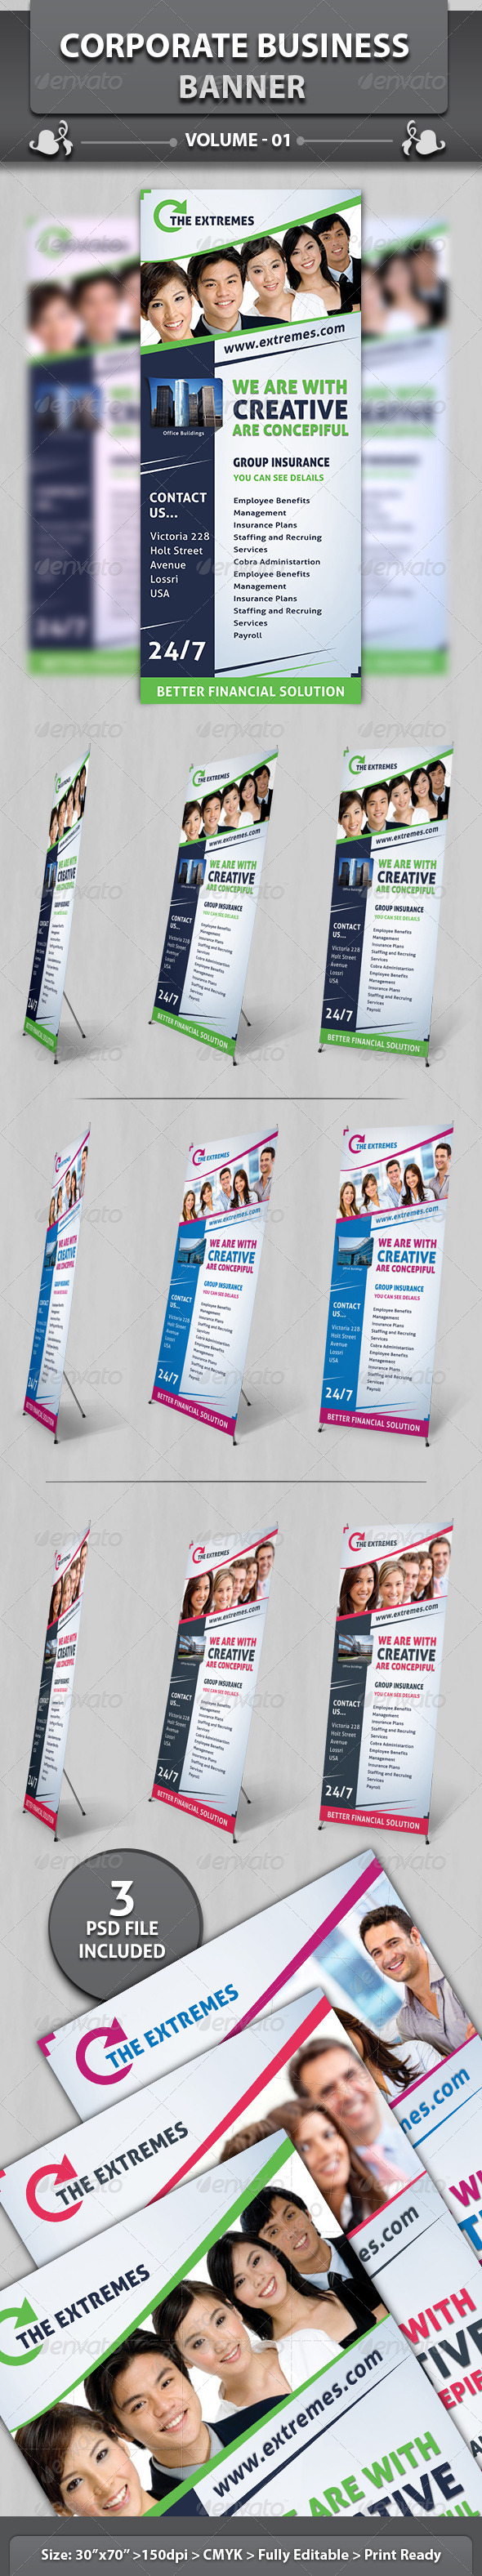 Corporate Business Banner | Volume 3 - Signage Print Templates